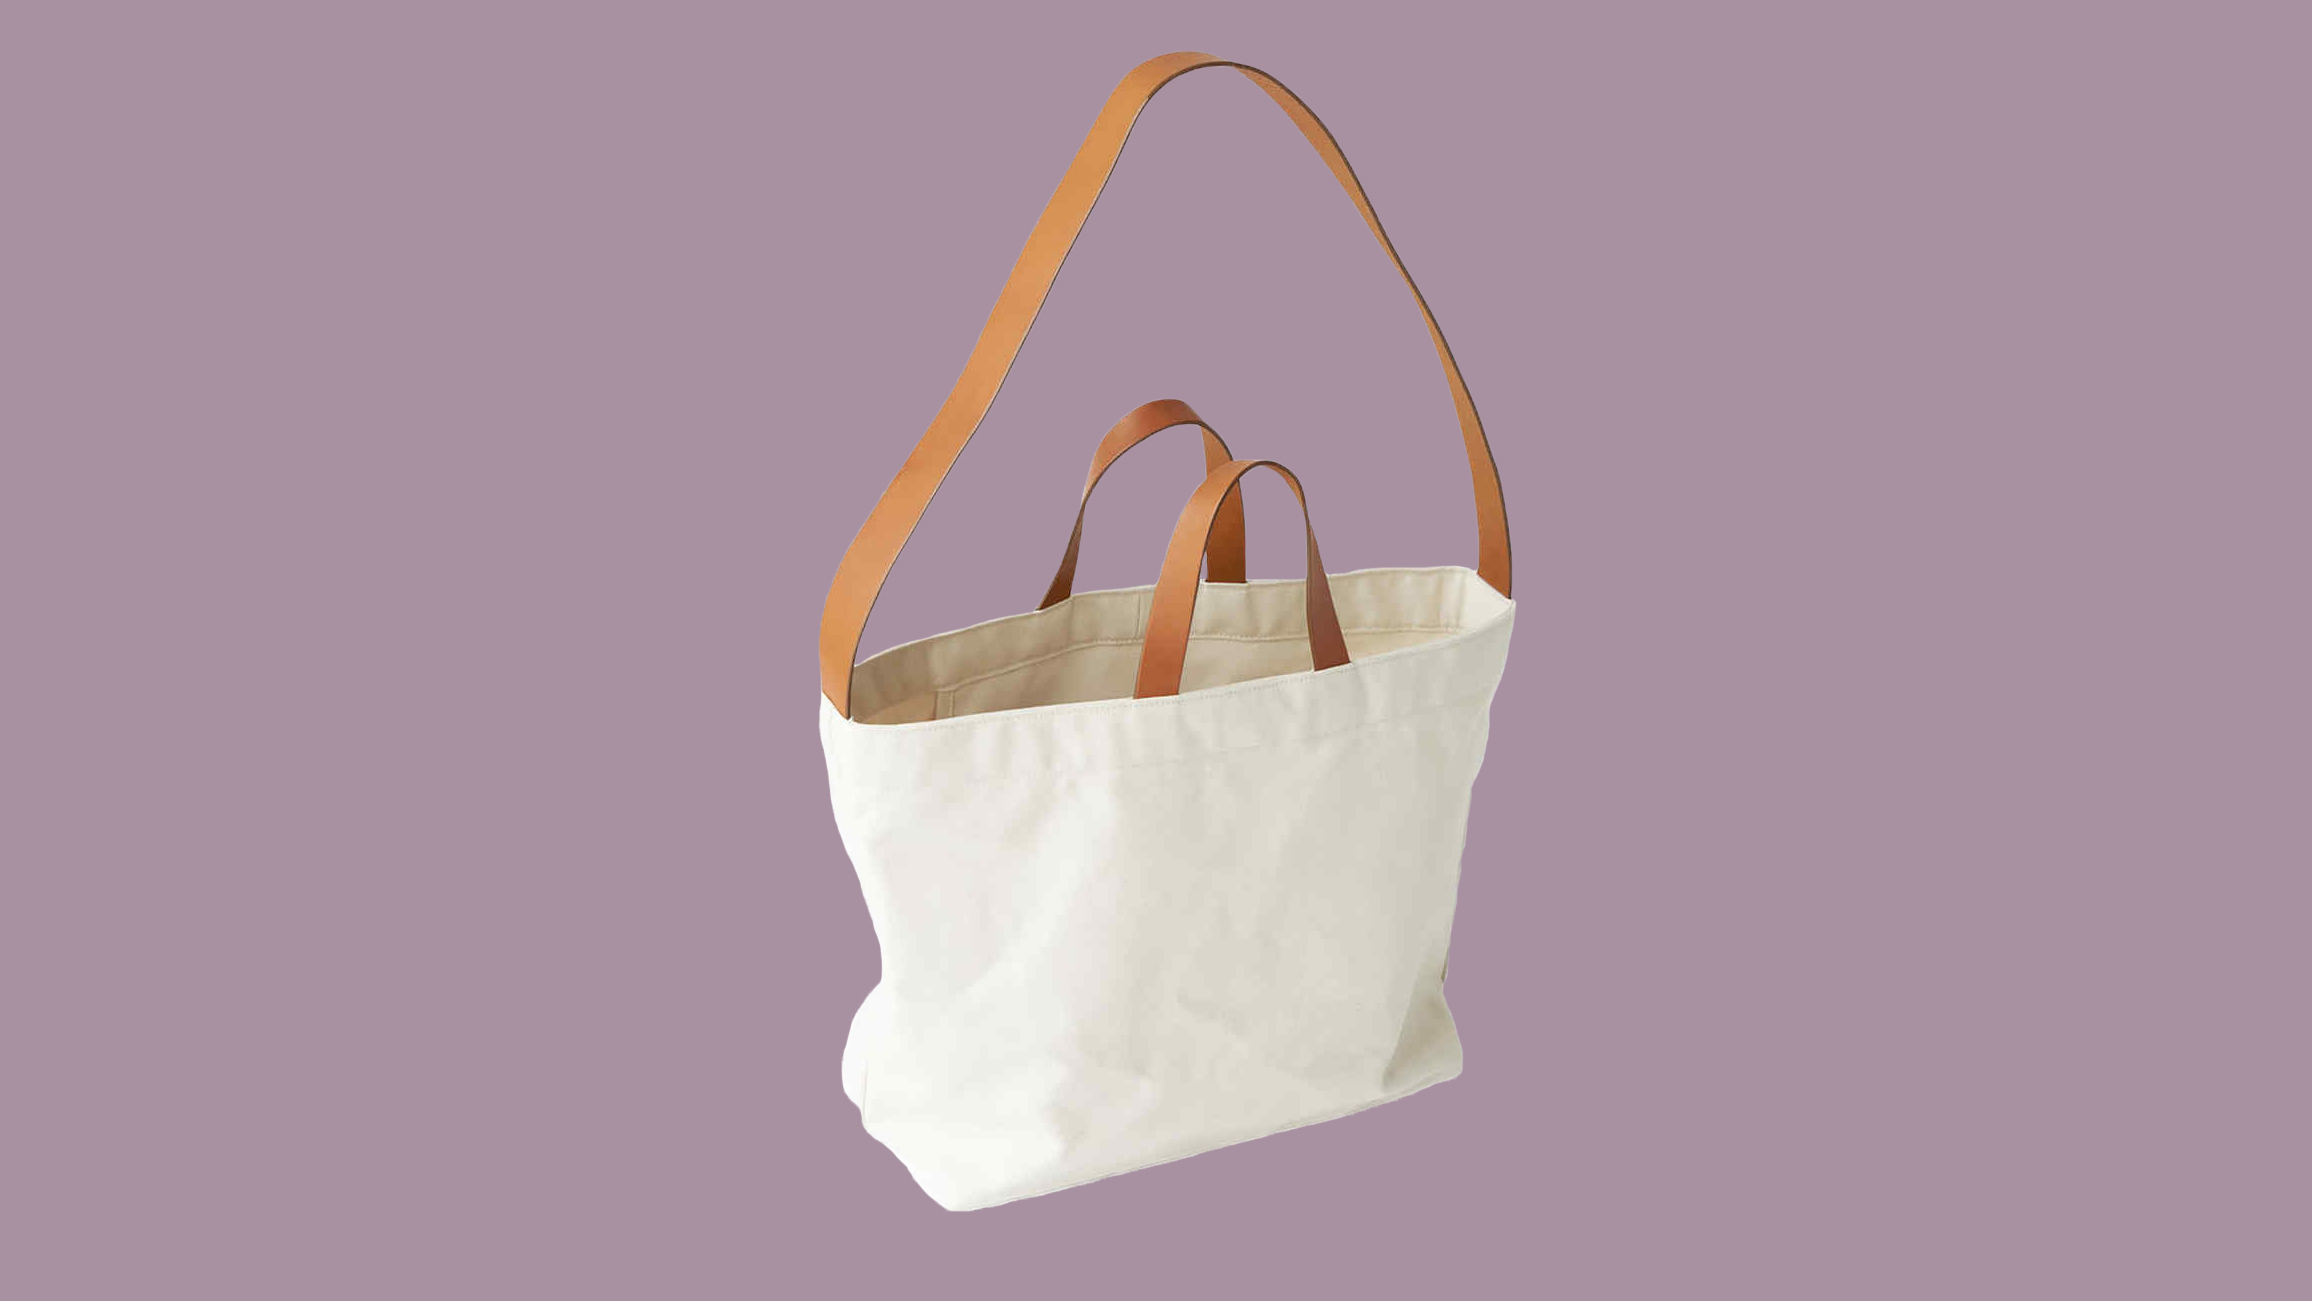 Makr canvas tote bag with straps